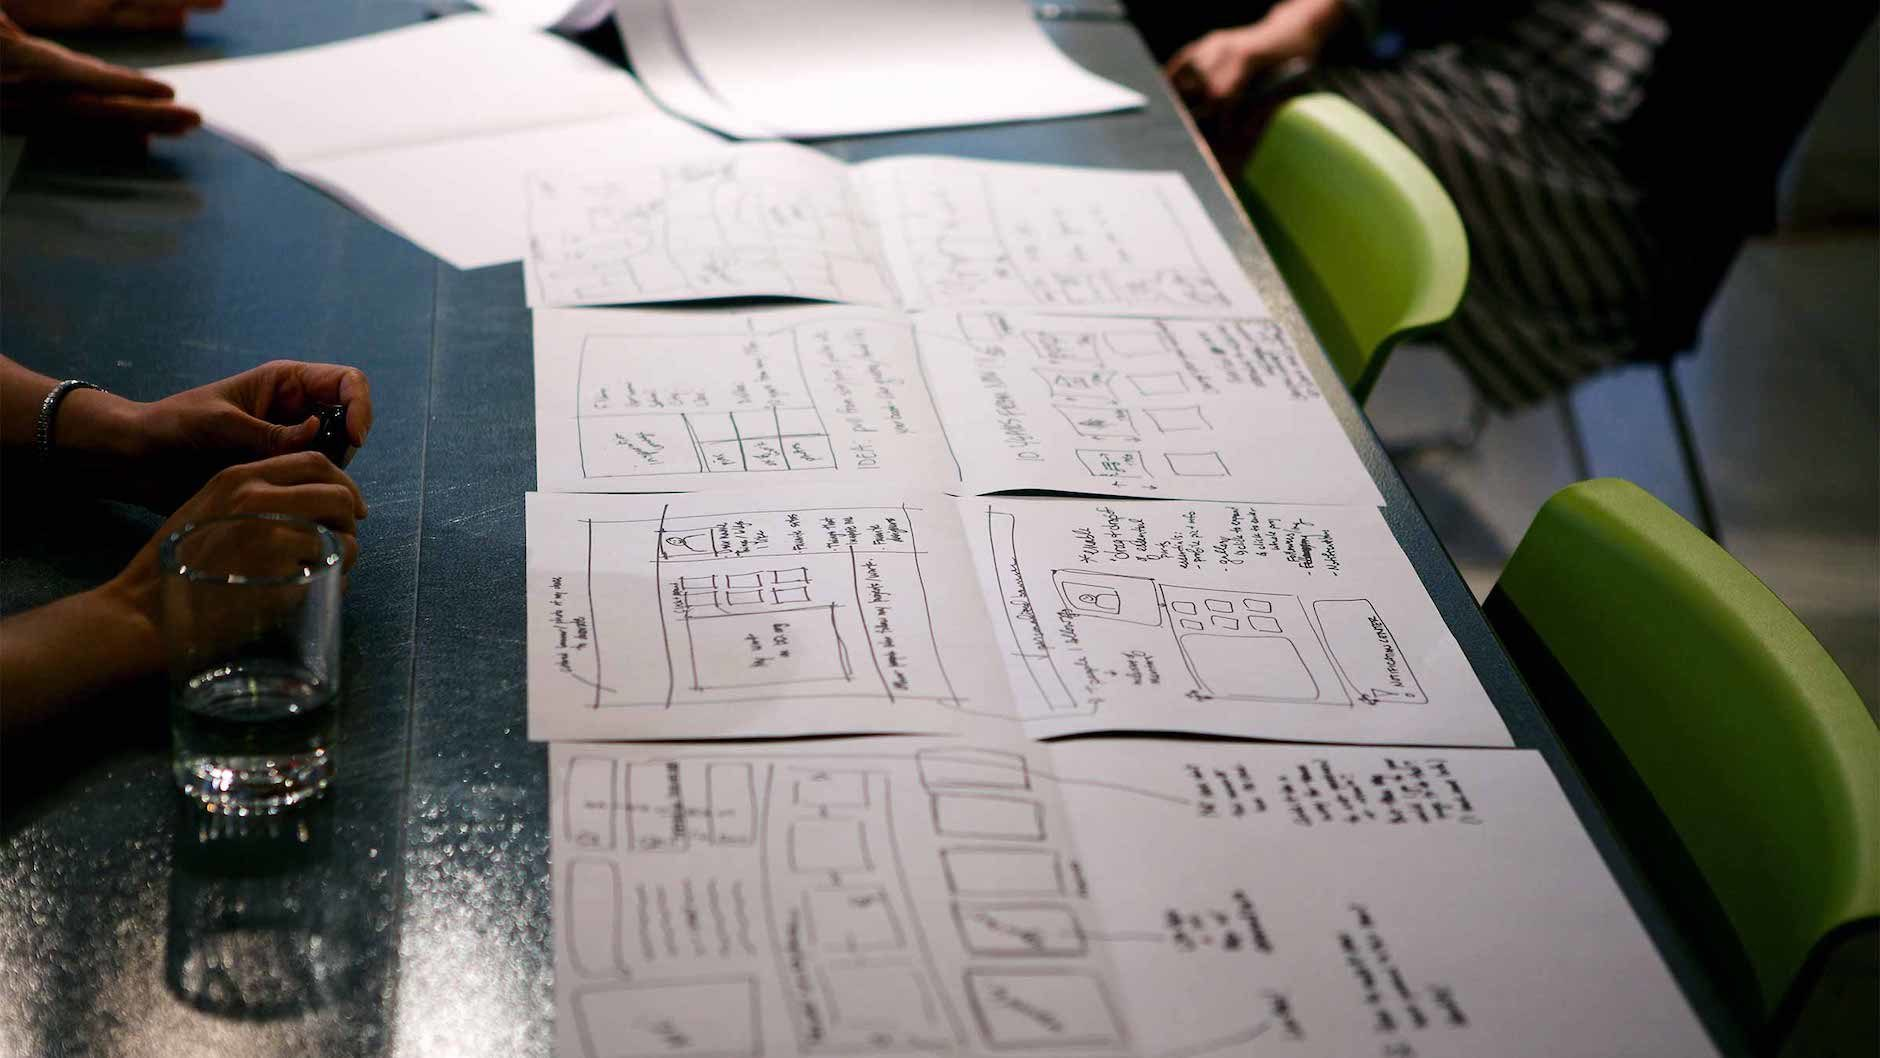 A collection of sketches lined up on a desk to illustrate information architecture in UX design